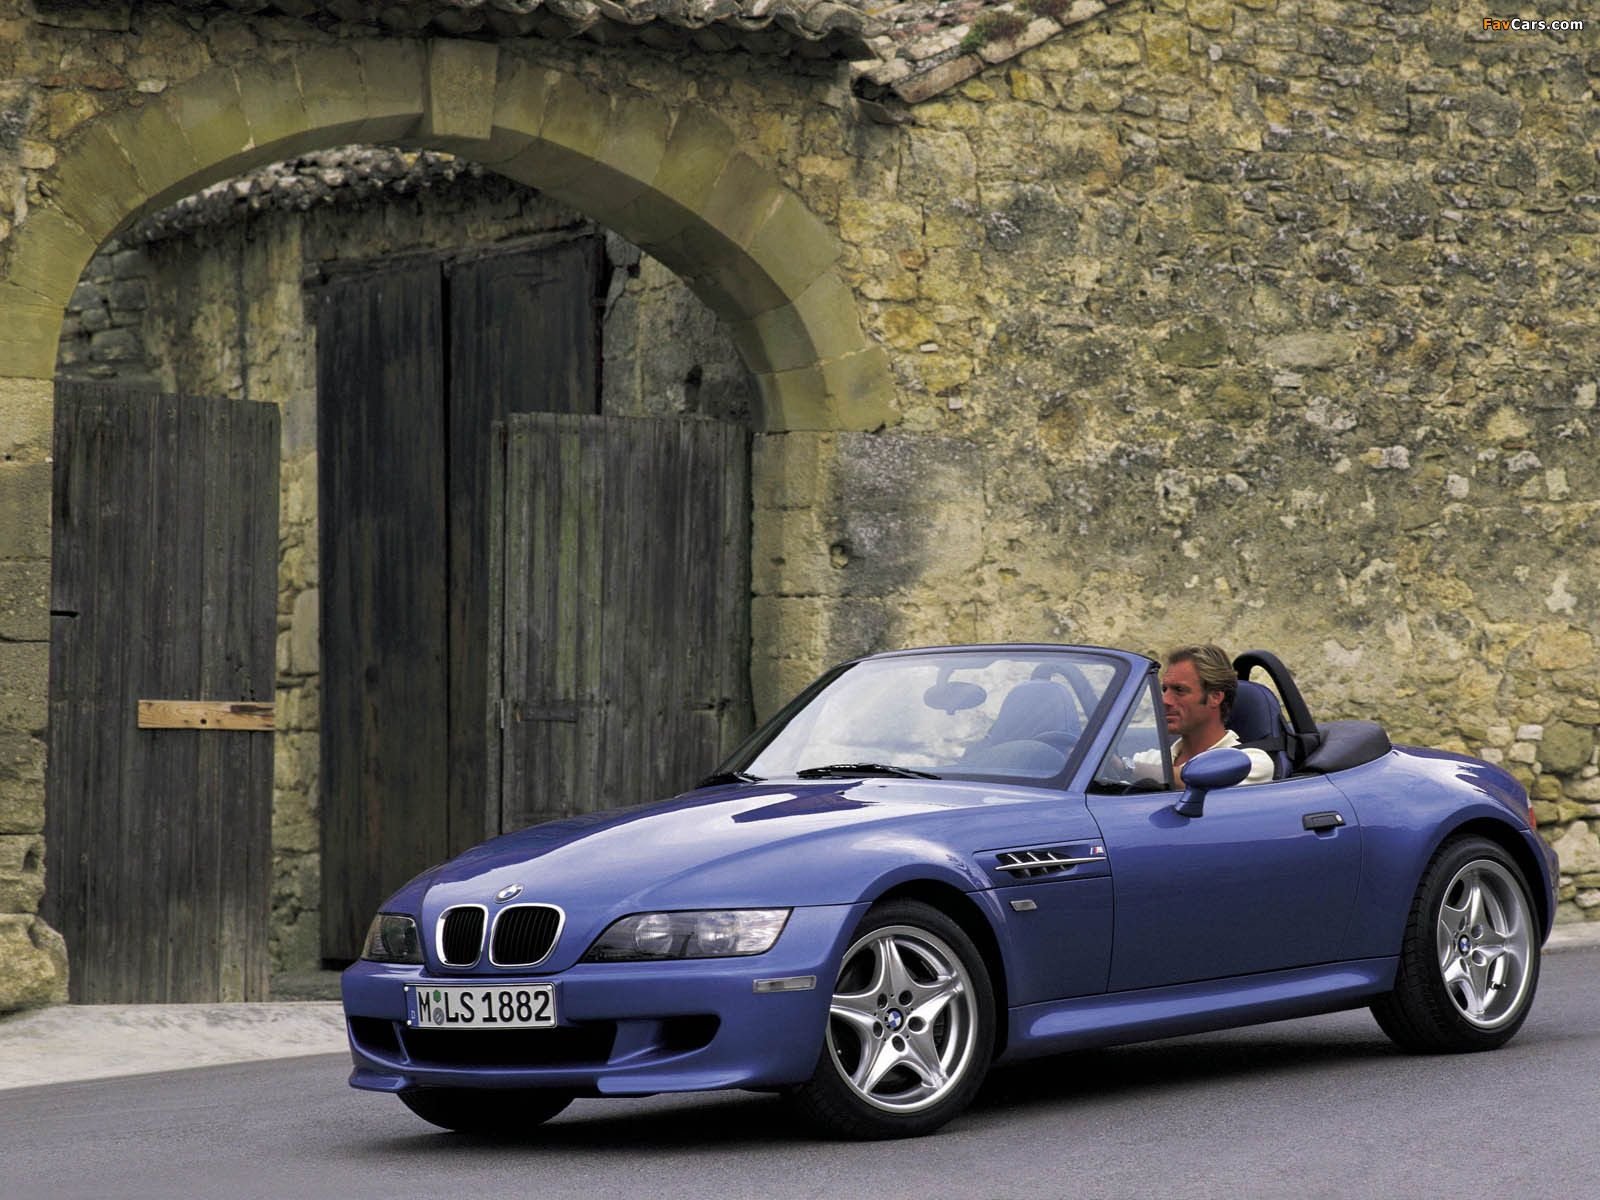 Used Bmw Z3 Luxury Roadsters For Sale From September 20